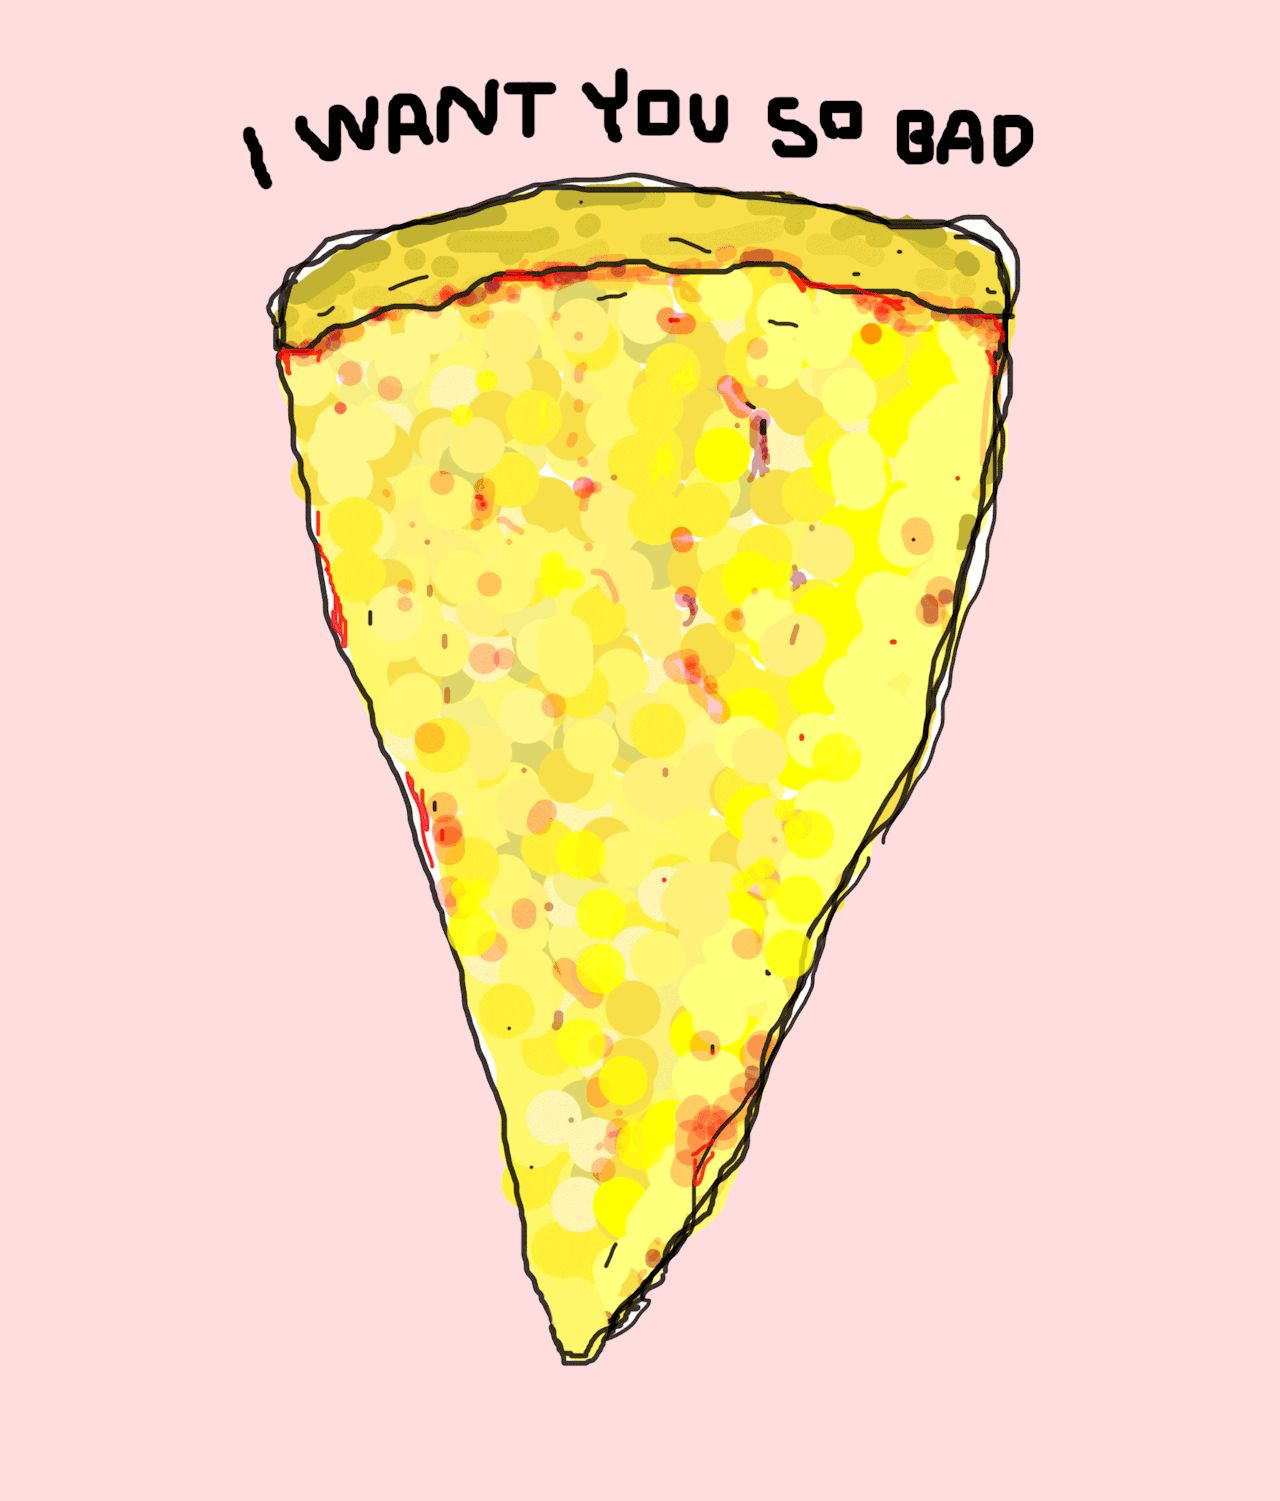 Pizza on GIFs. 130 Animated GIF images of pizzas for free